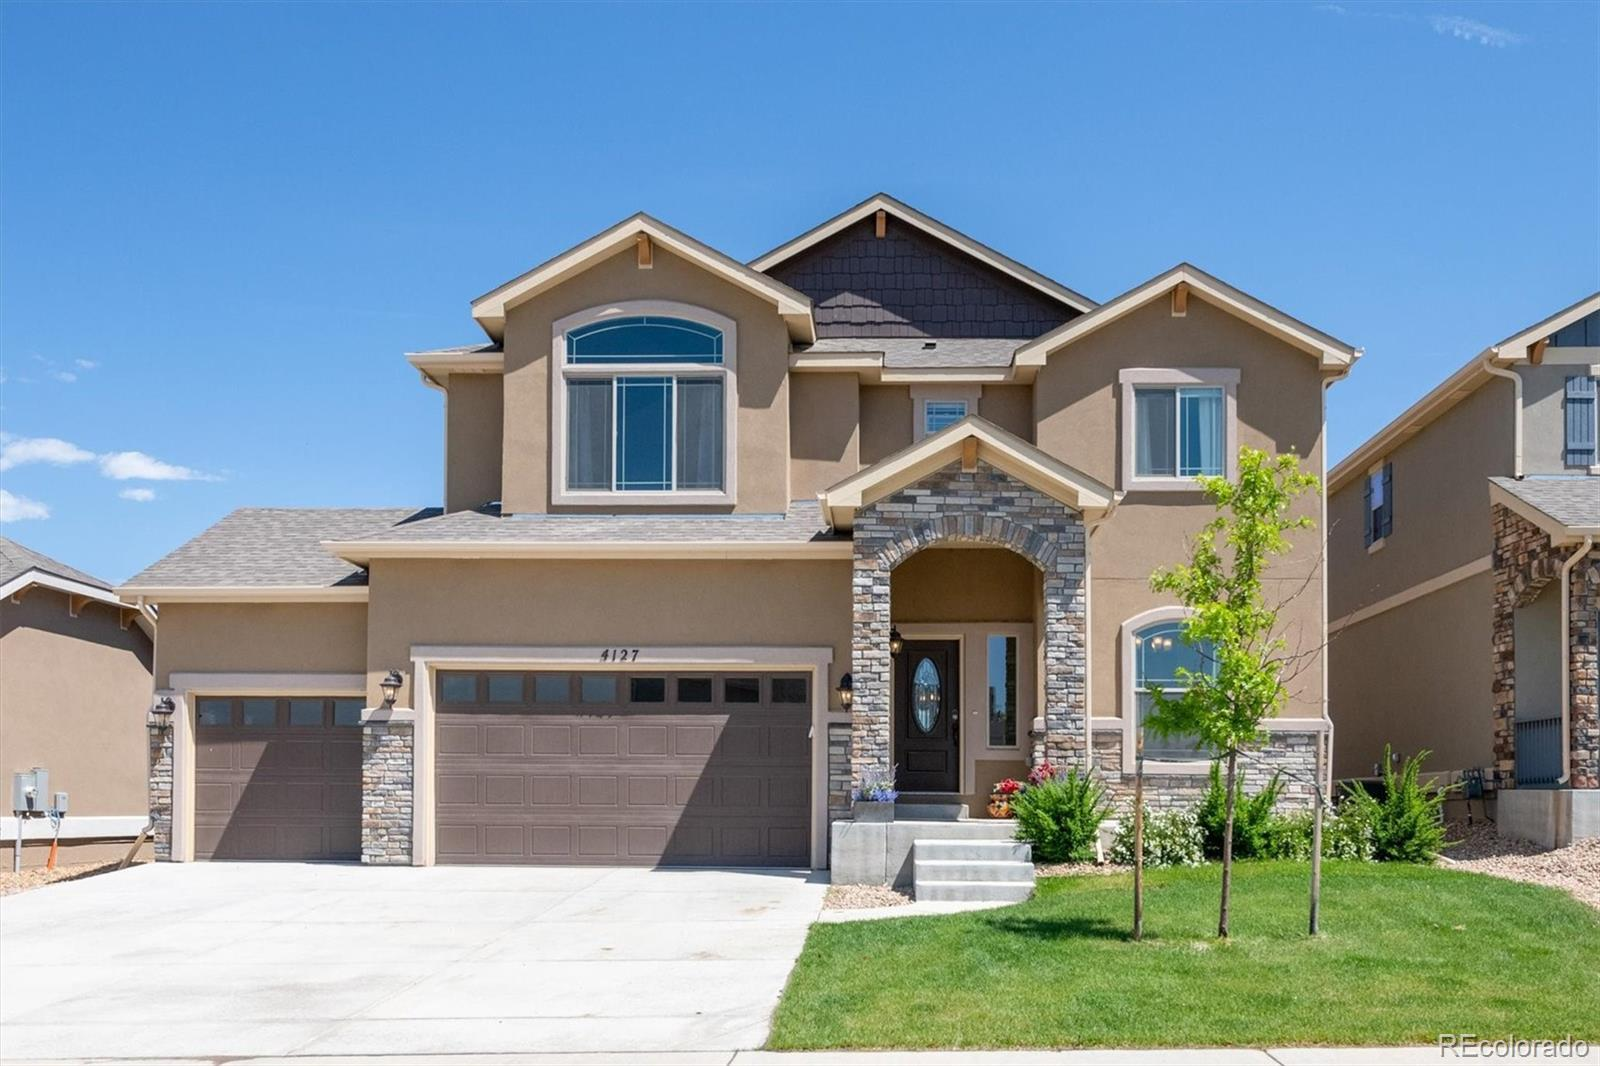 4127 Pennycress Drive, Johnstown, CO 80534 - #: 6584369